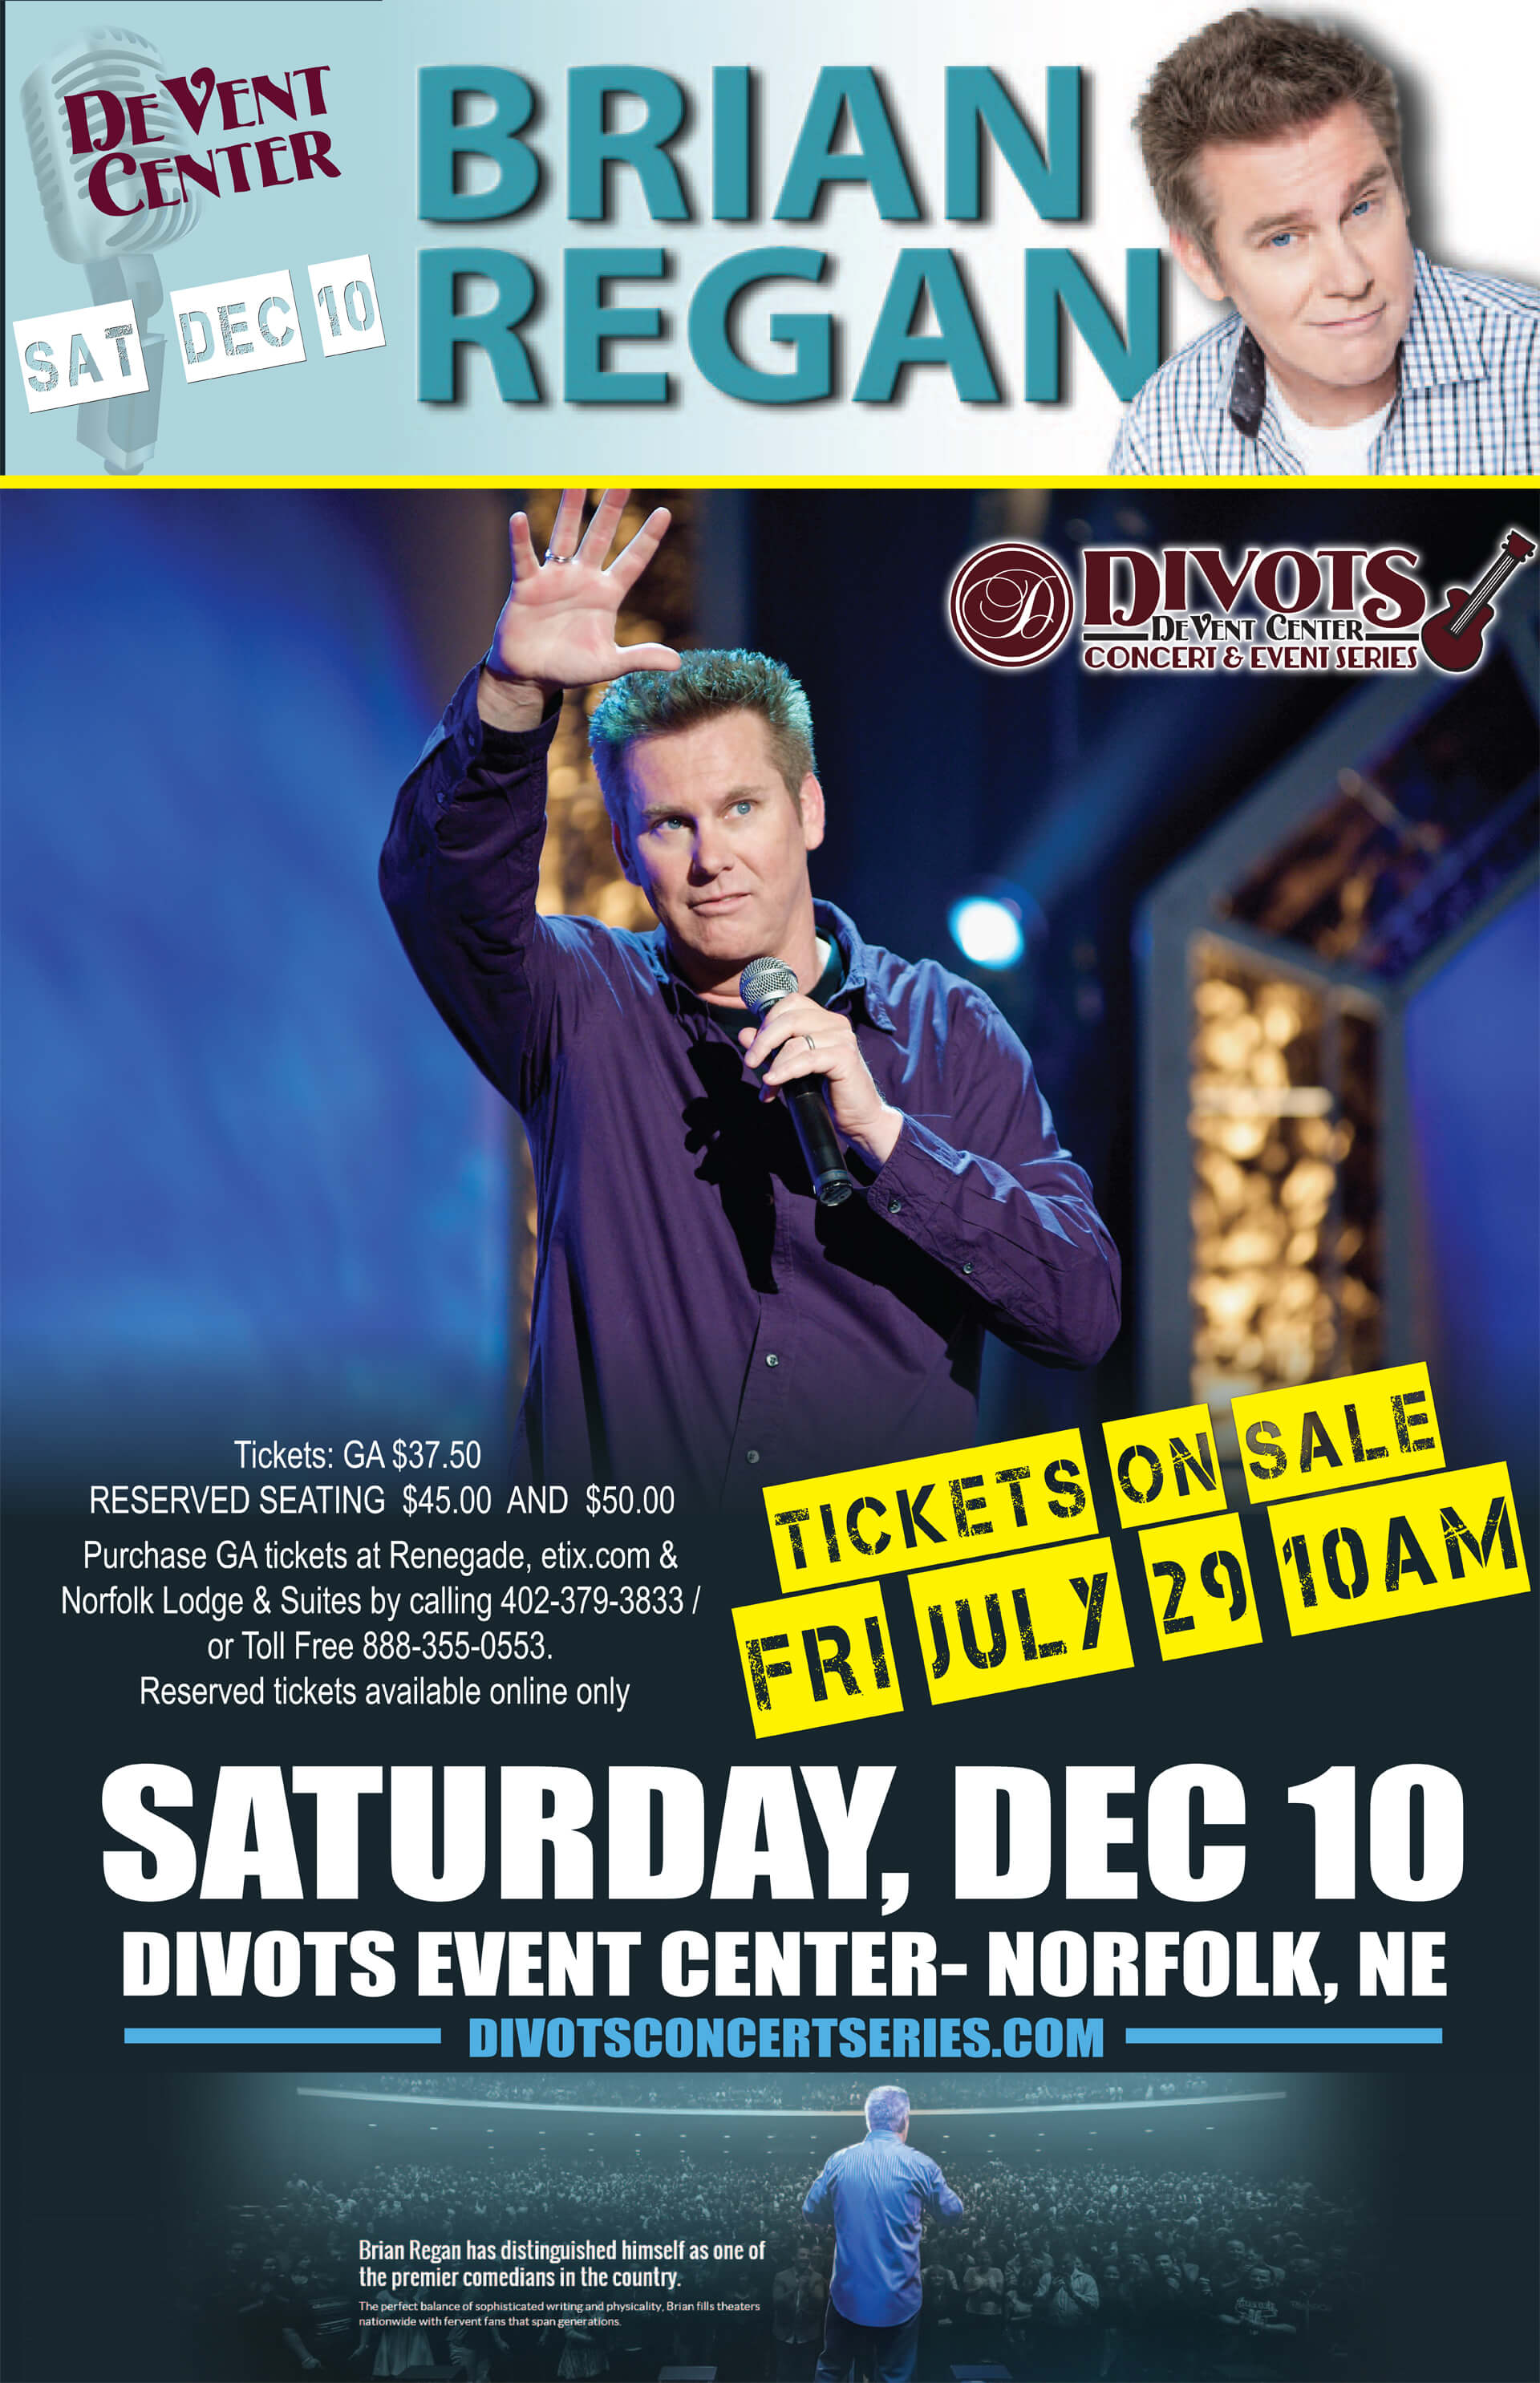 Live Comedy Concert featuring Brian Regan at 